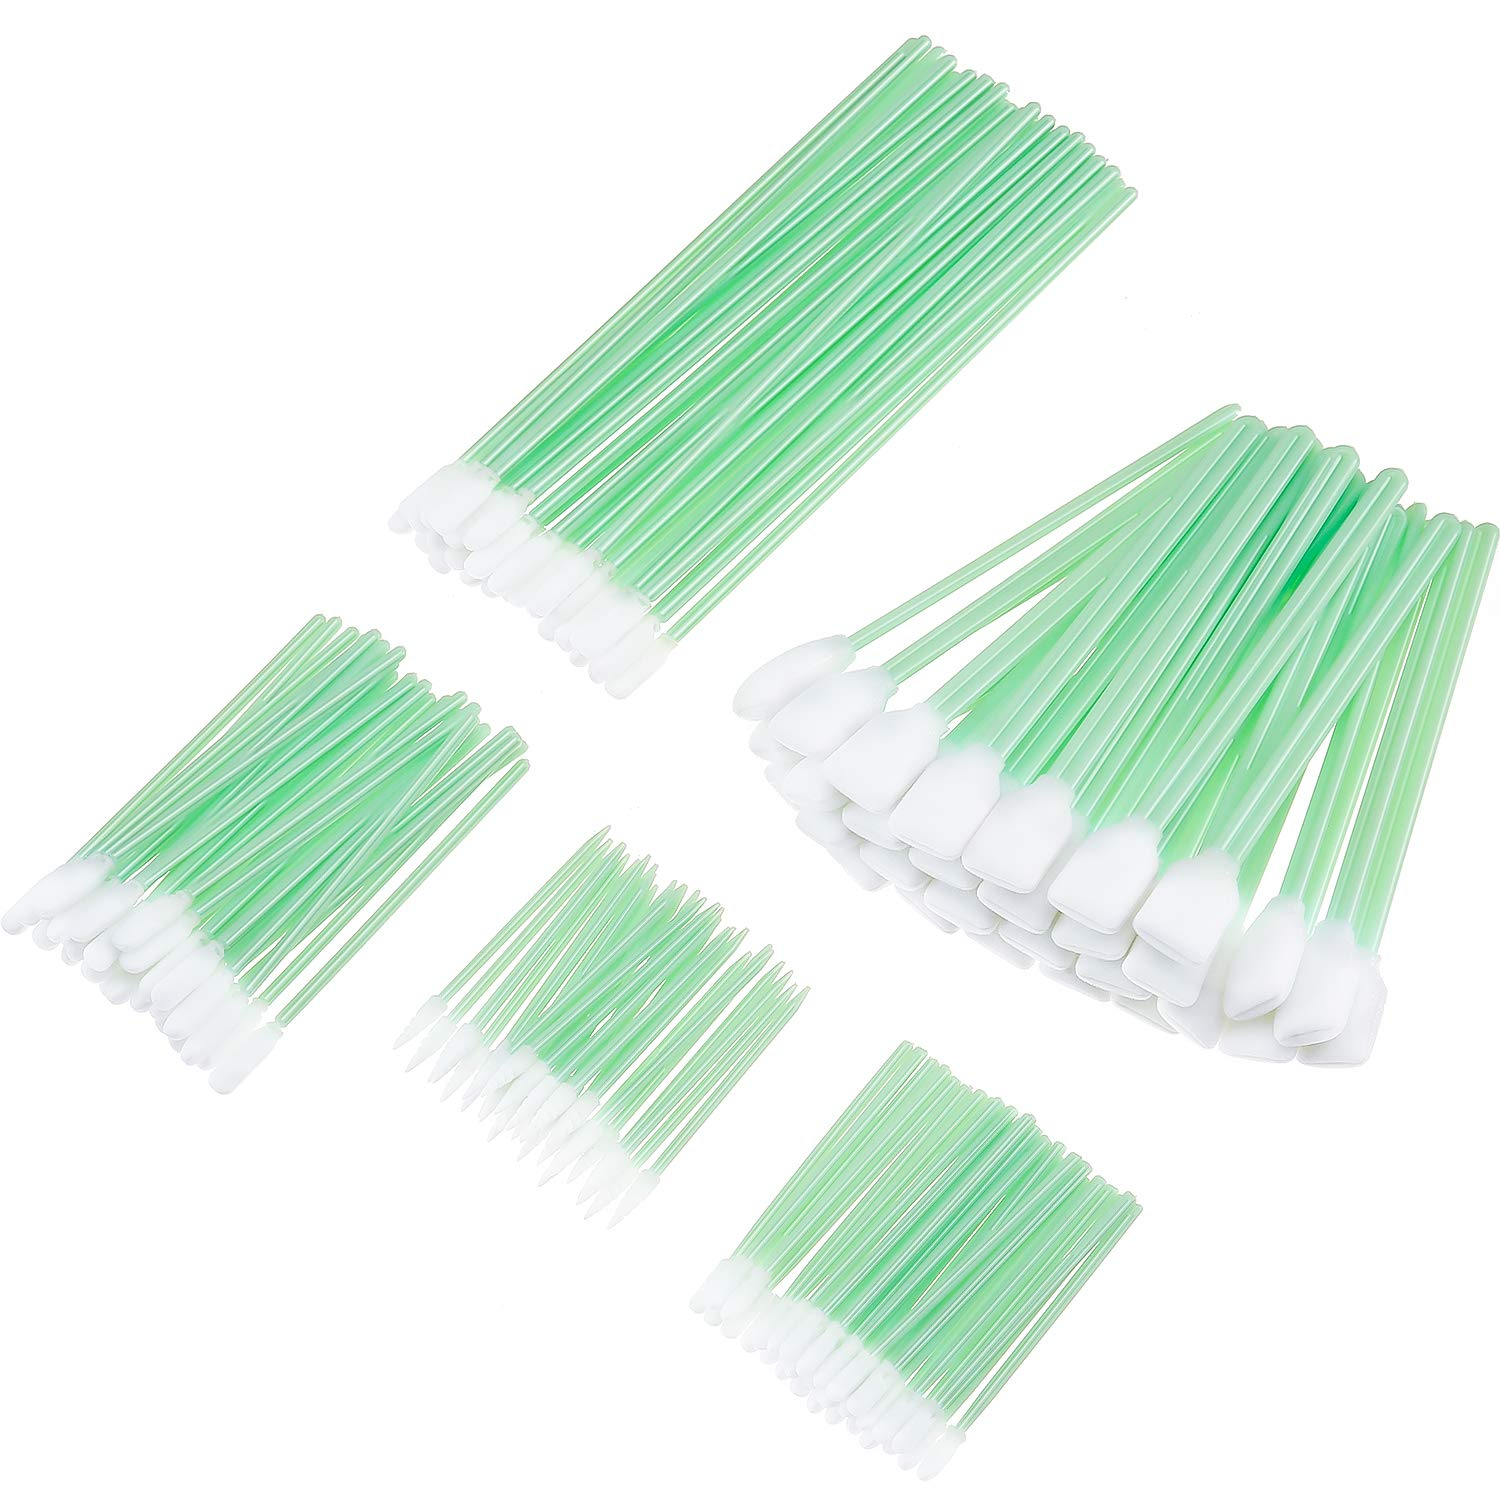 Non-Sterile Rayon Cleaning Swabsticks for Medical and Home Use Single use. Pack of 500 Long Paper Shaft Cleaning Swabs 8 Rayon-Tipped Applicators AMZ OB//GYN Swabsticks 8 Latex-Free